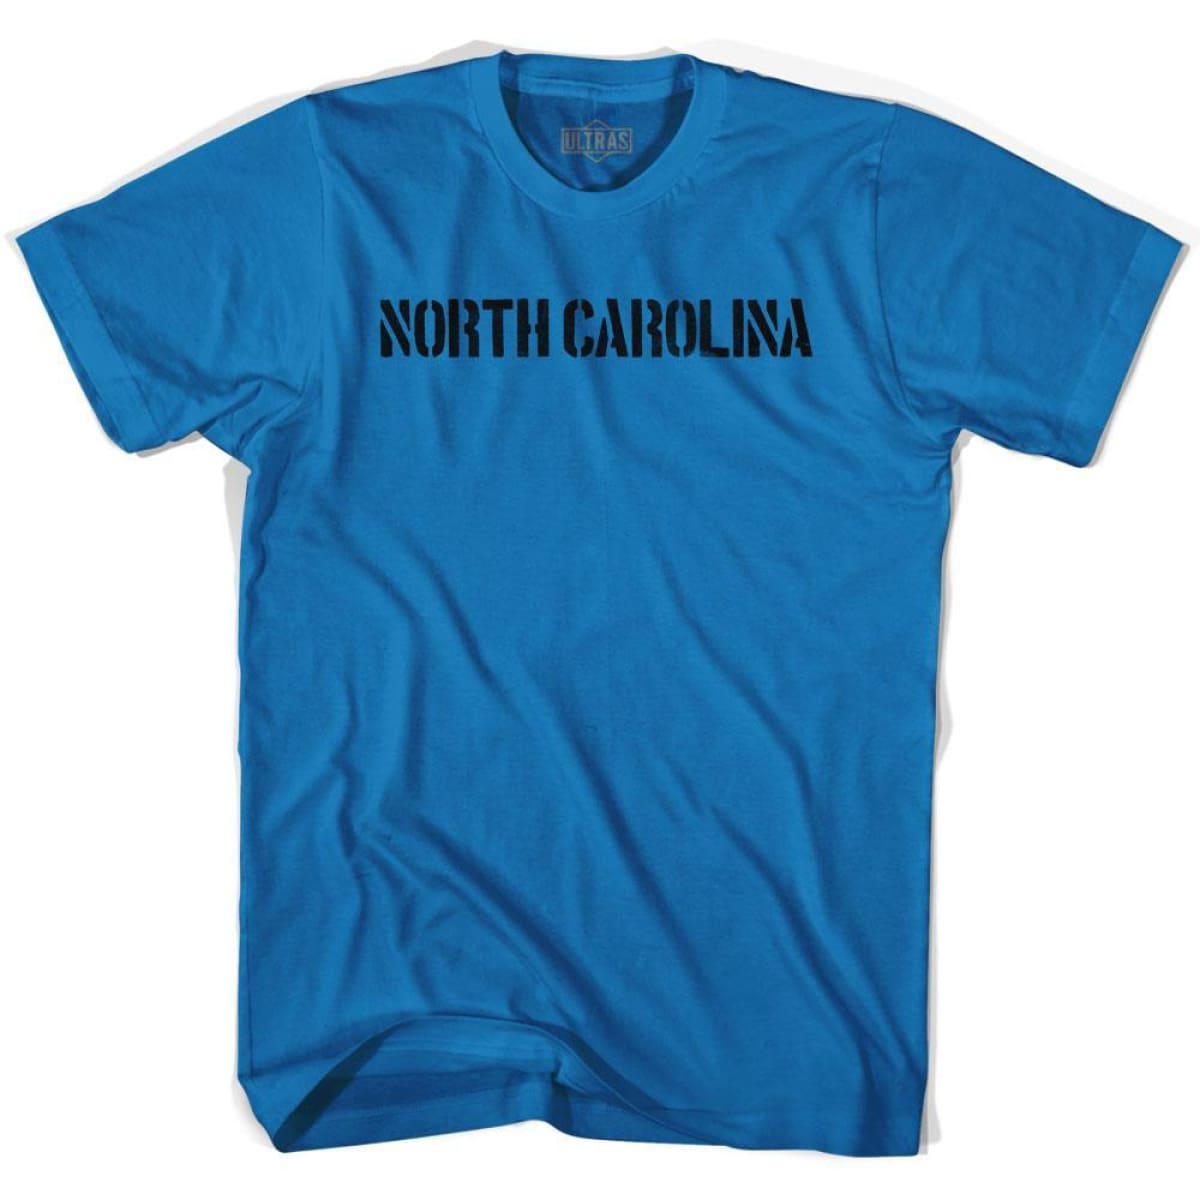 North Carolina State Stencil Adult Cotton T-shirt - Royal / Adult Small - Stencil State